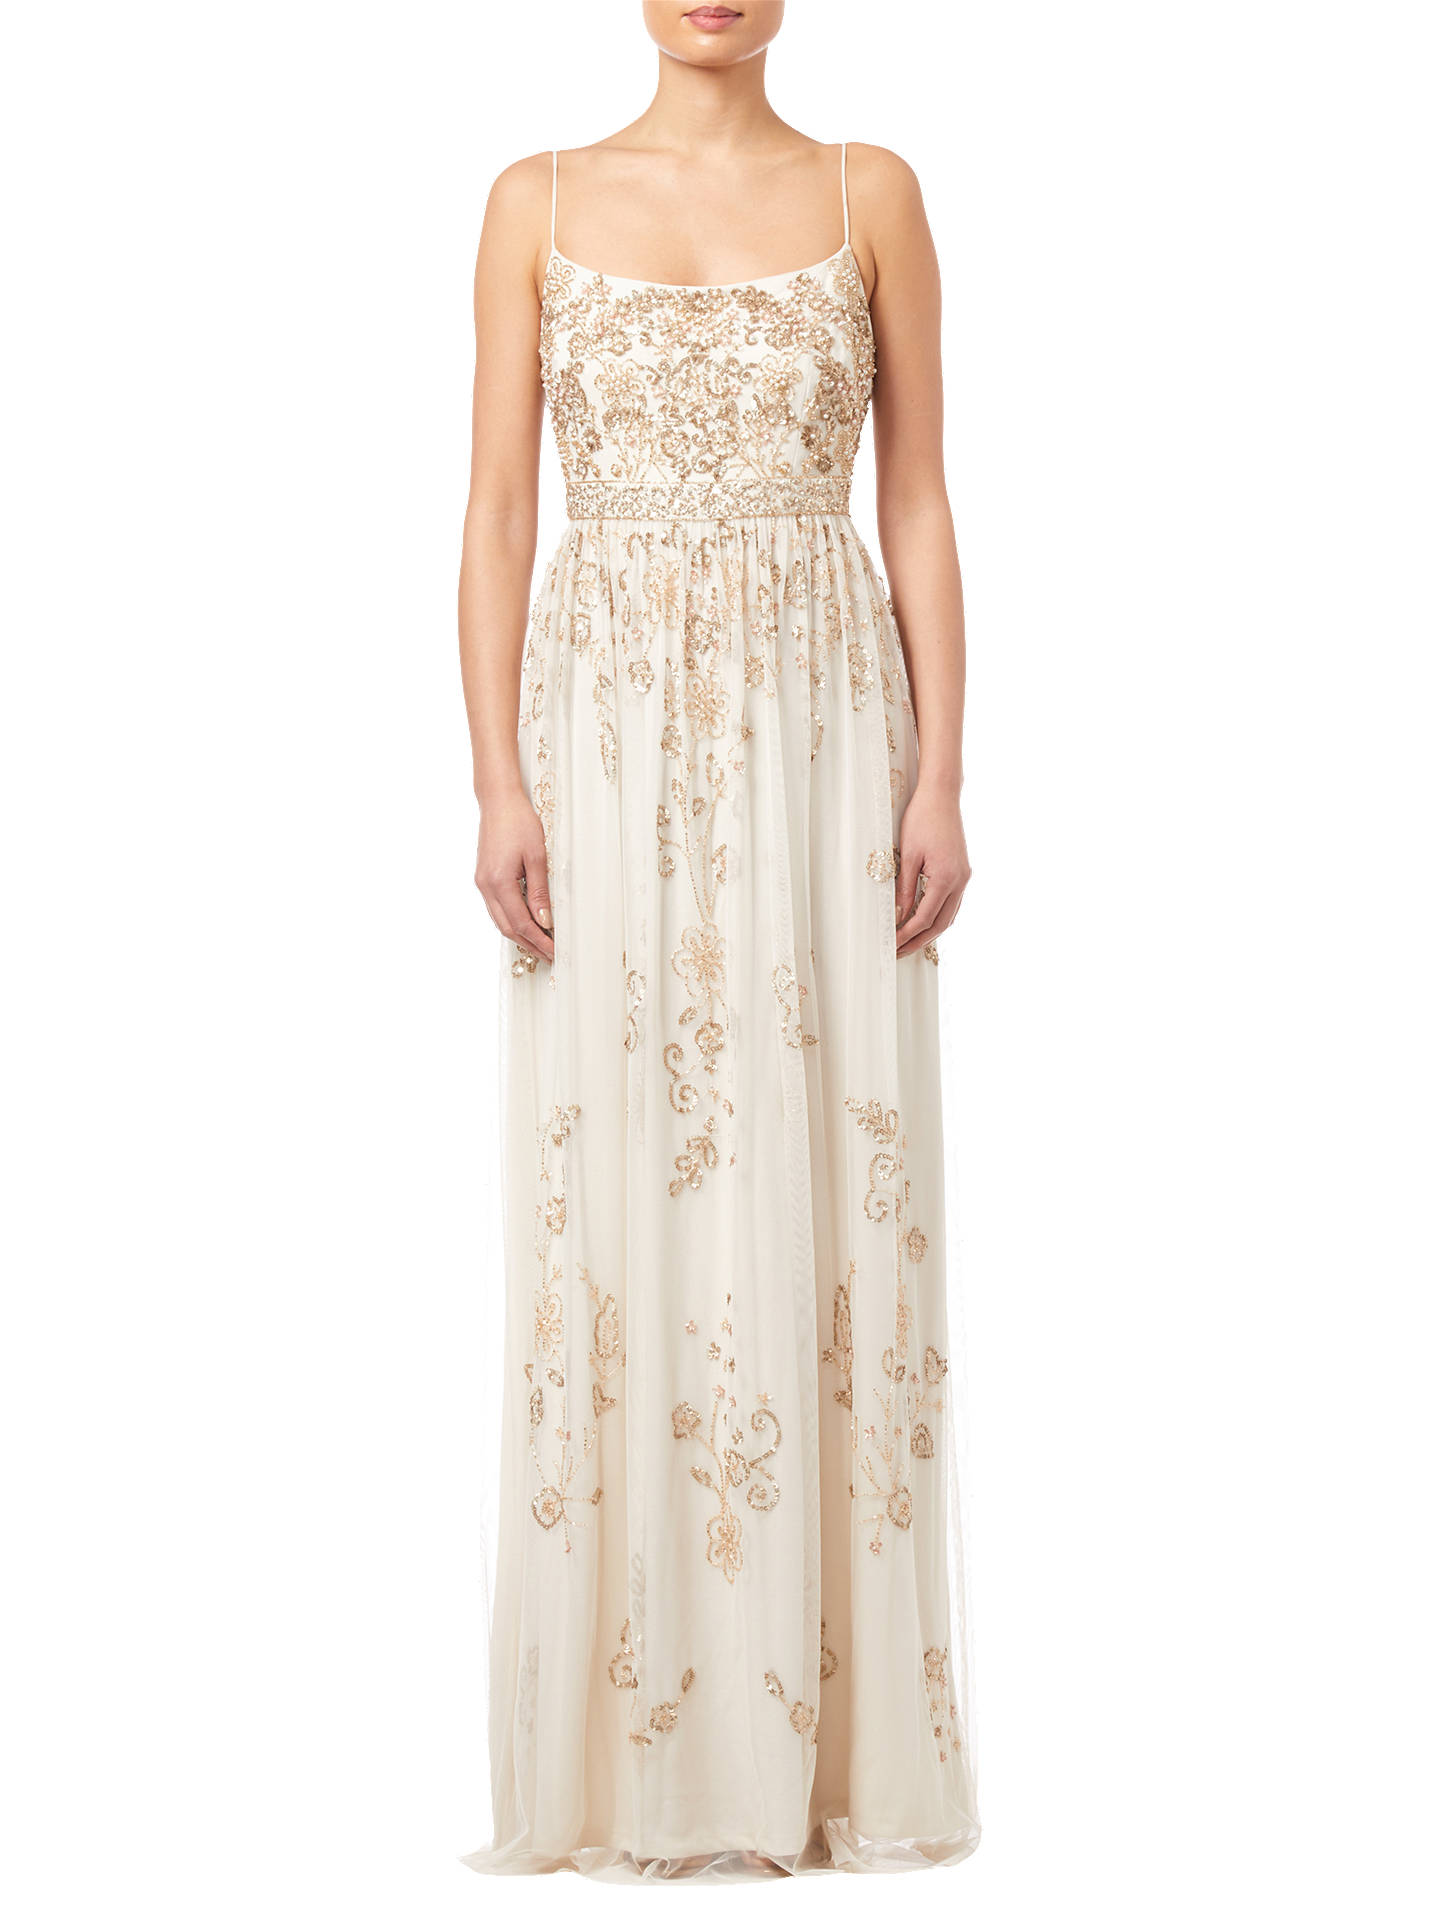 BuyAdrianna Papell Beaded Long Dress, Pearl, 10 Online at johnlewis.com